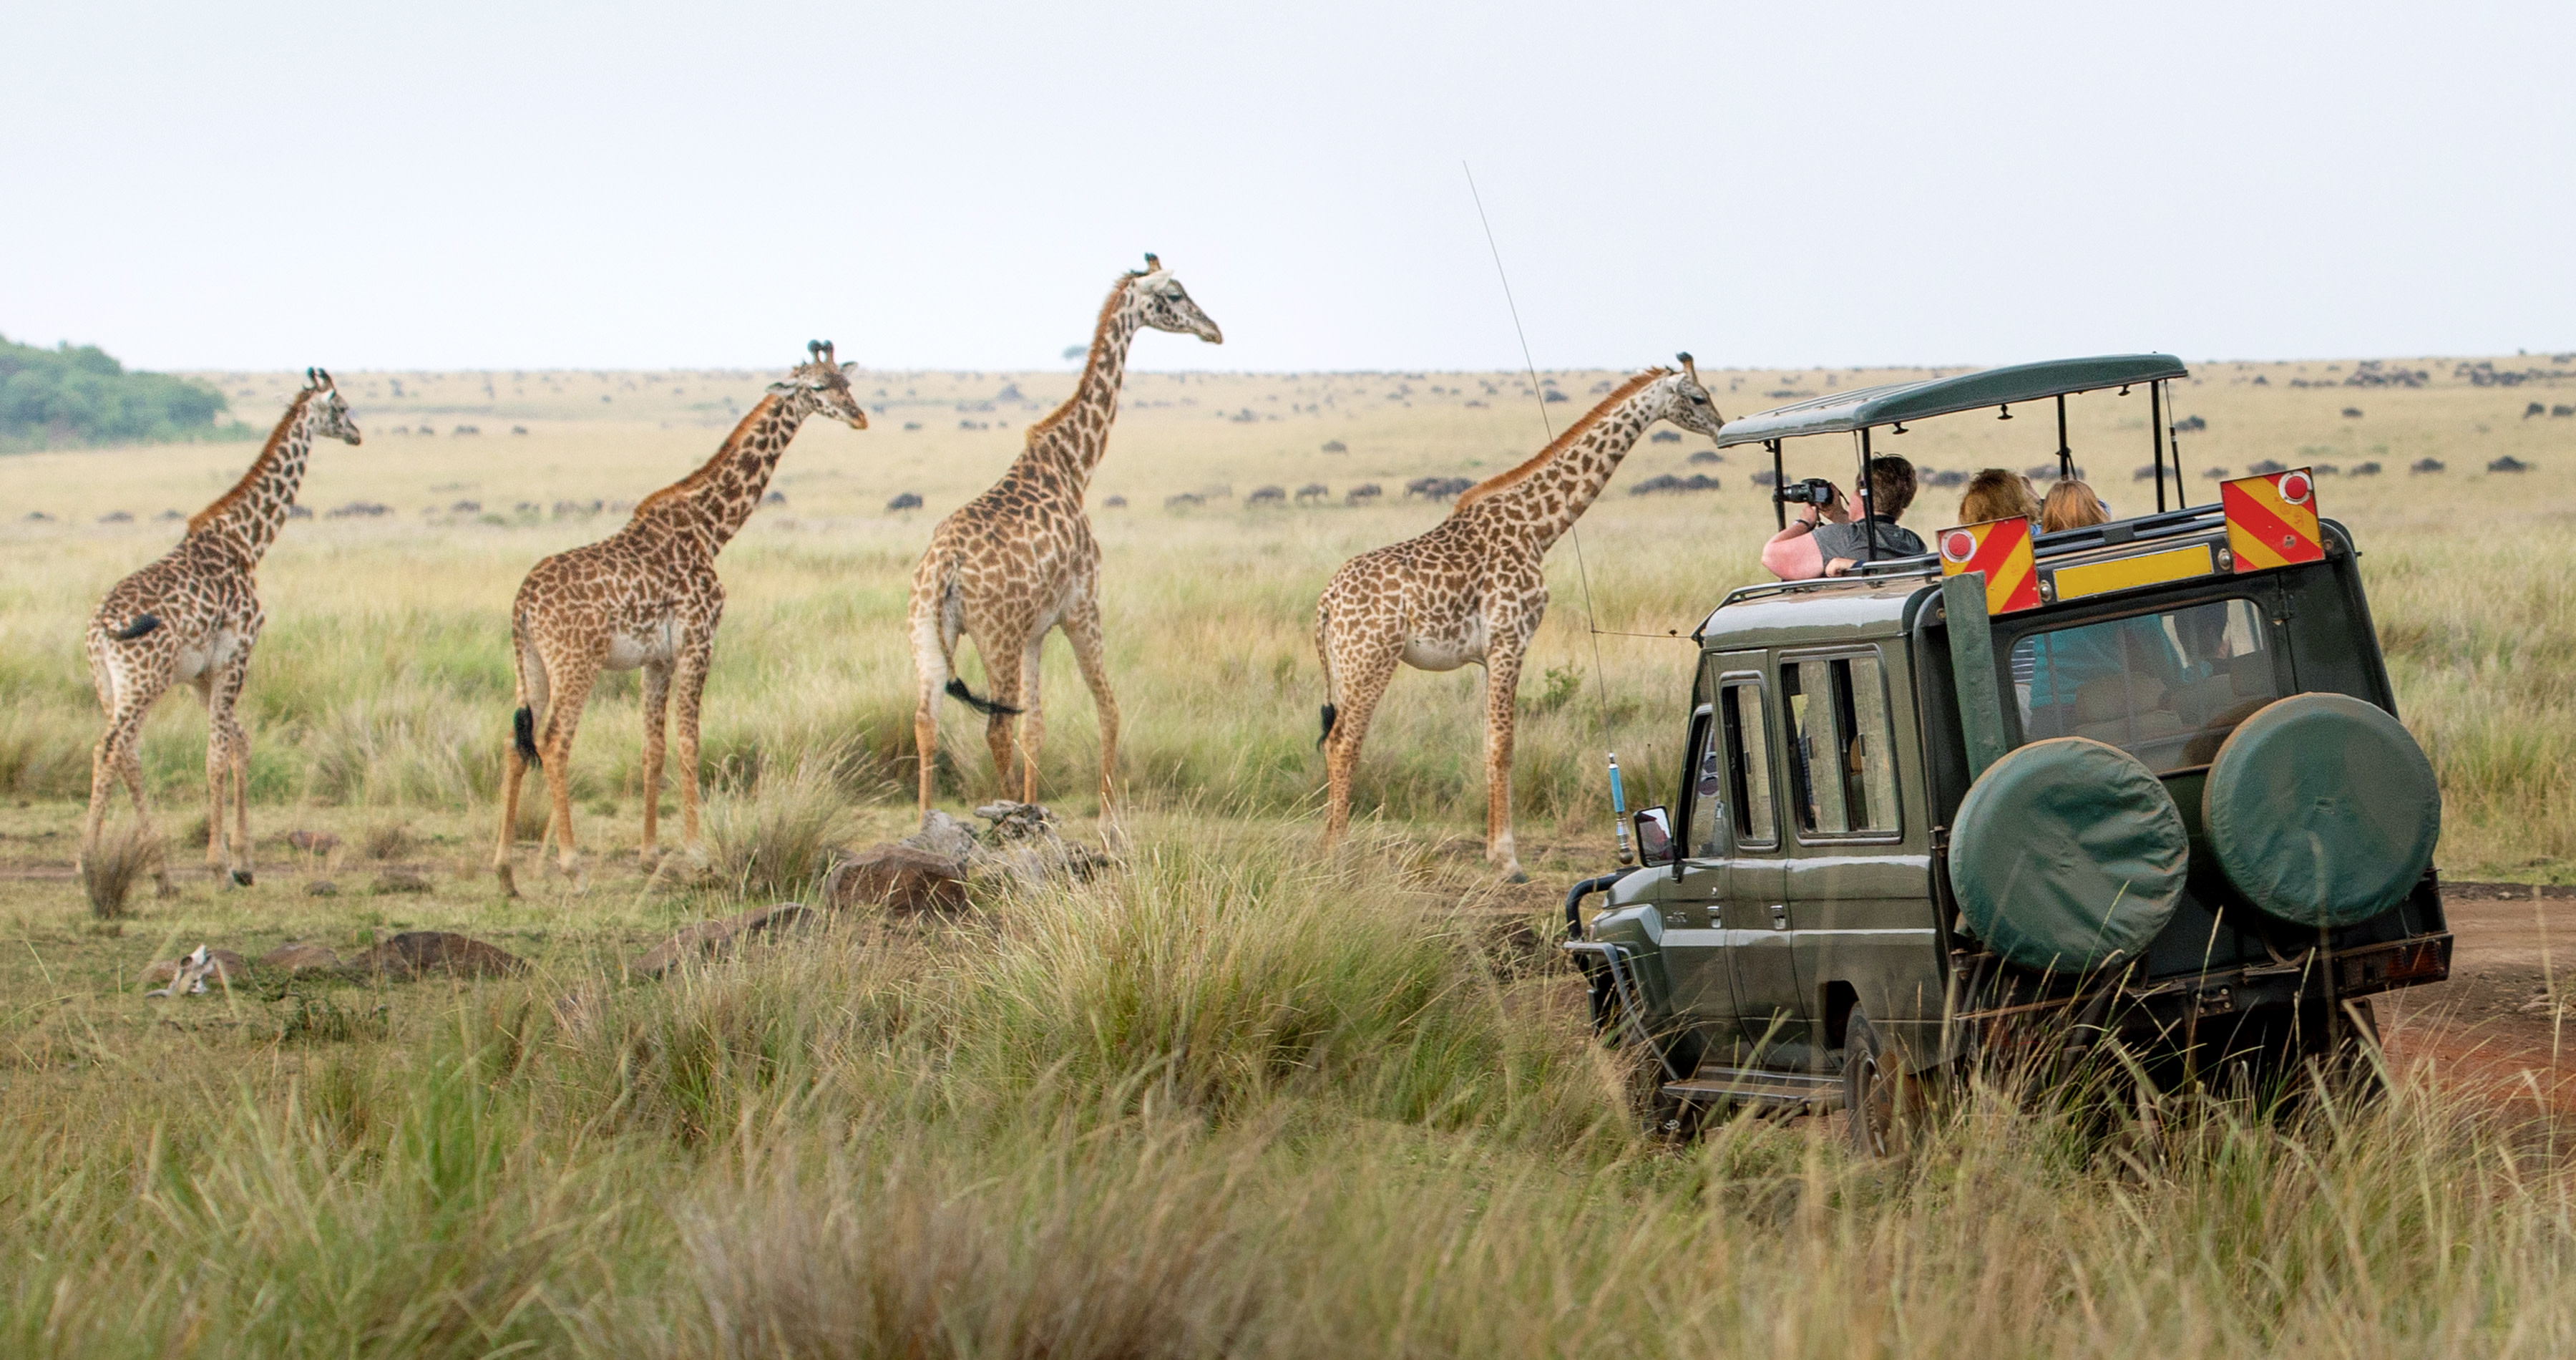 Kenya travel guide - Giraffes herd in savannah, Kenya, Africa